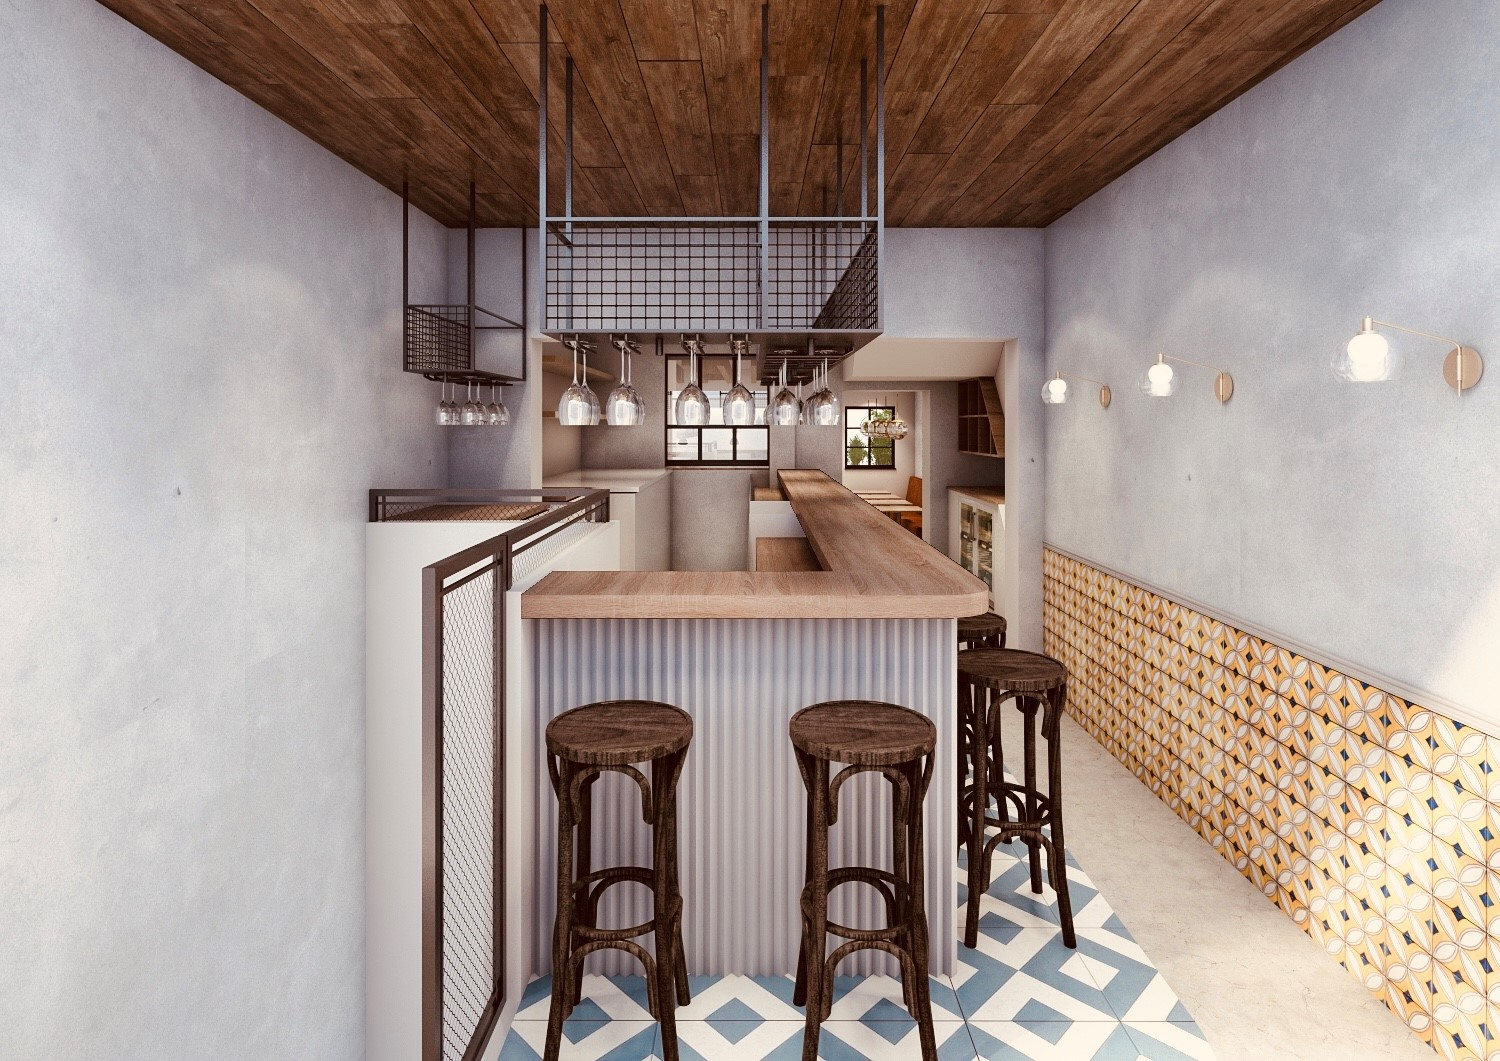 Another New Restaurant Will Open in Notting Hill